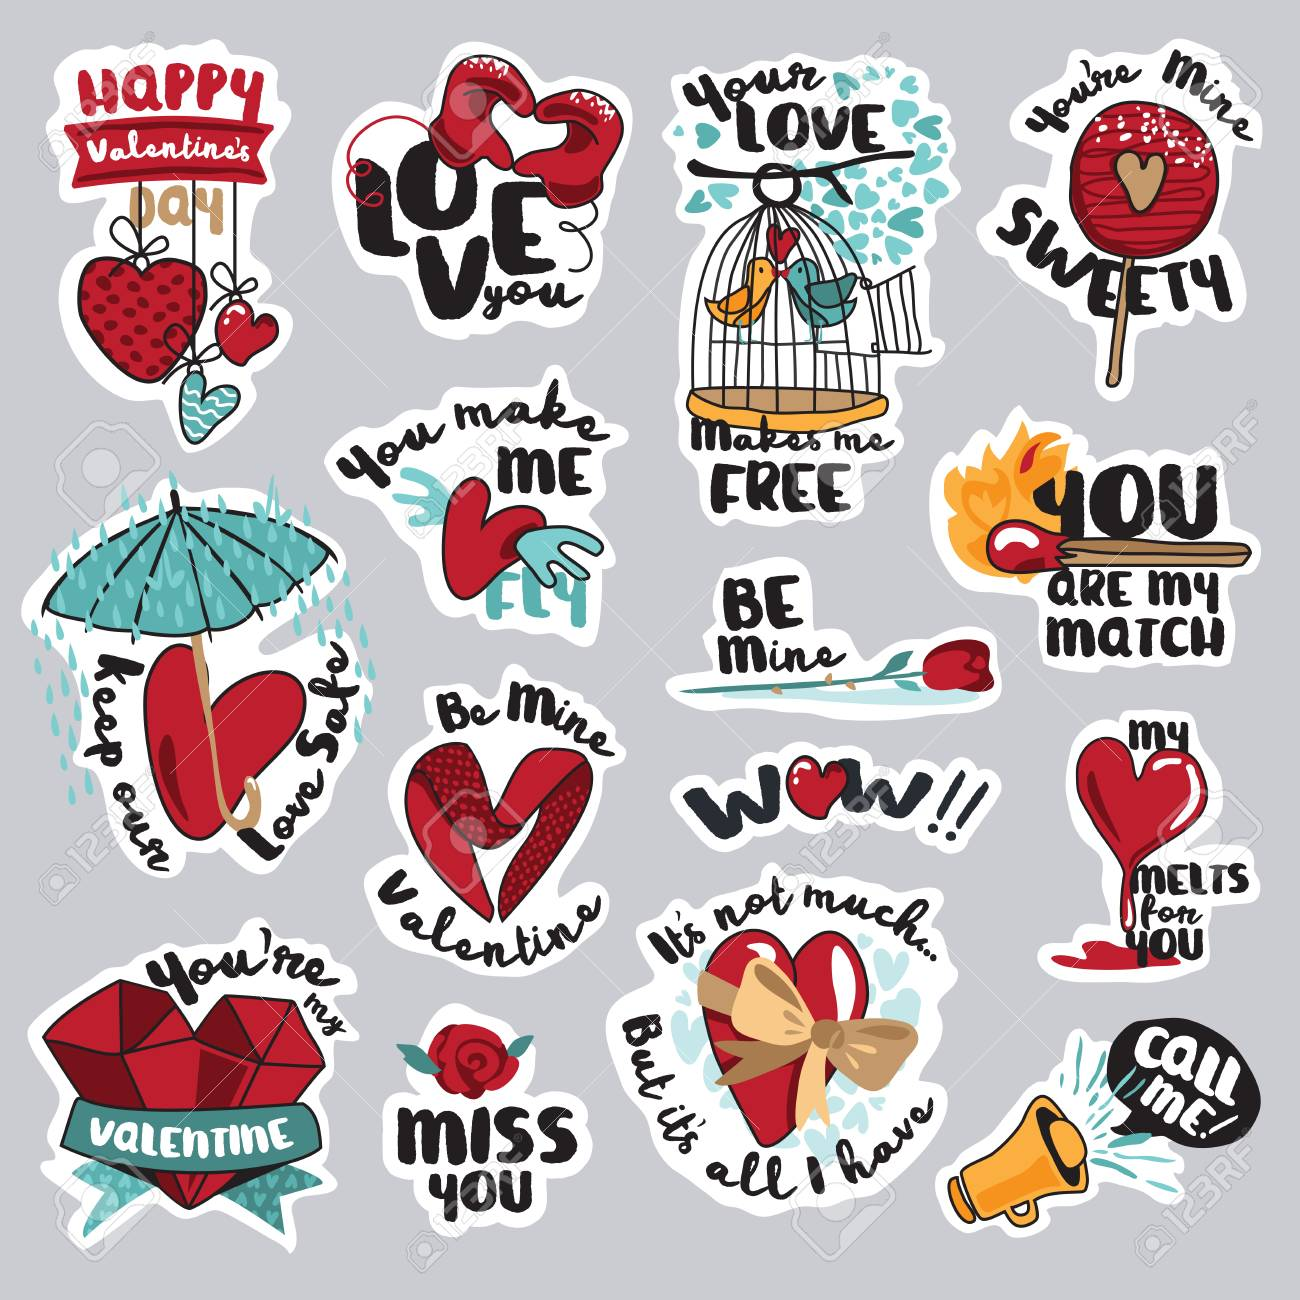 Set of love stickers for social network sweet and funny stickers for mobile messages